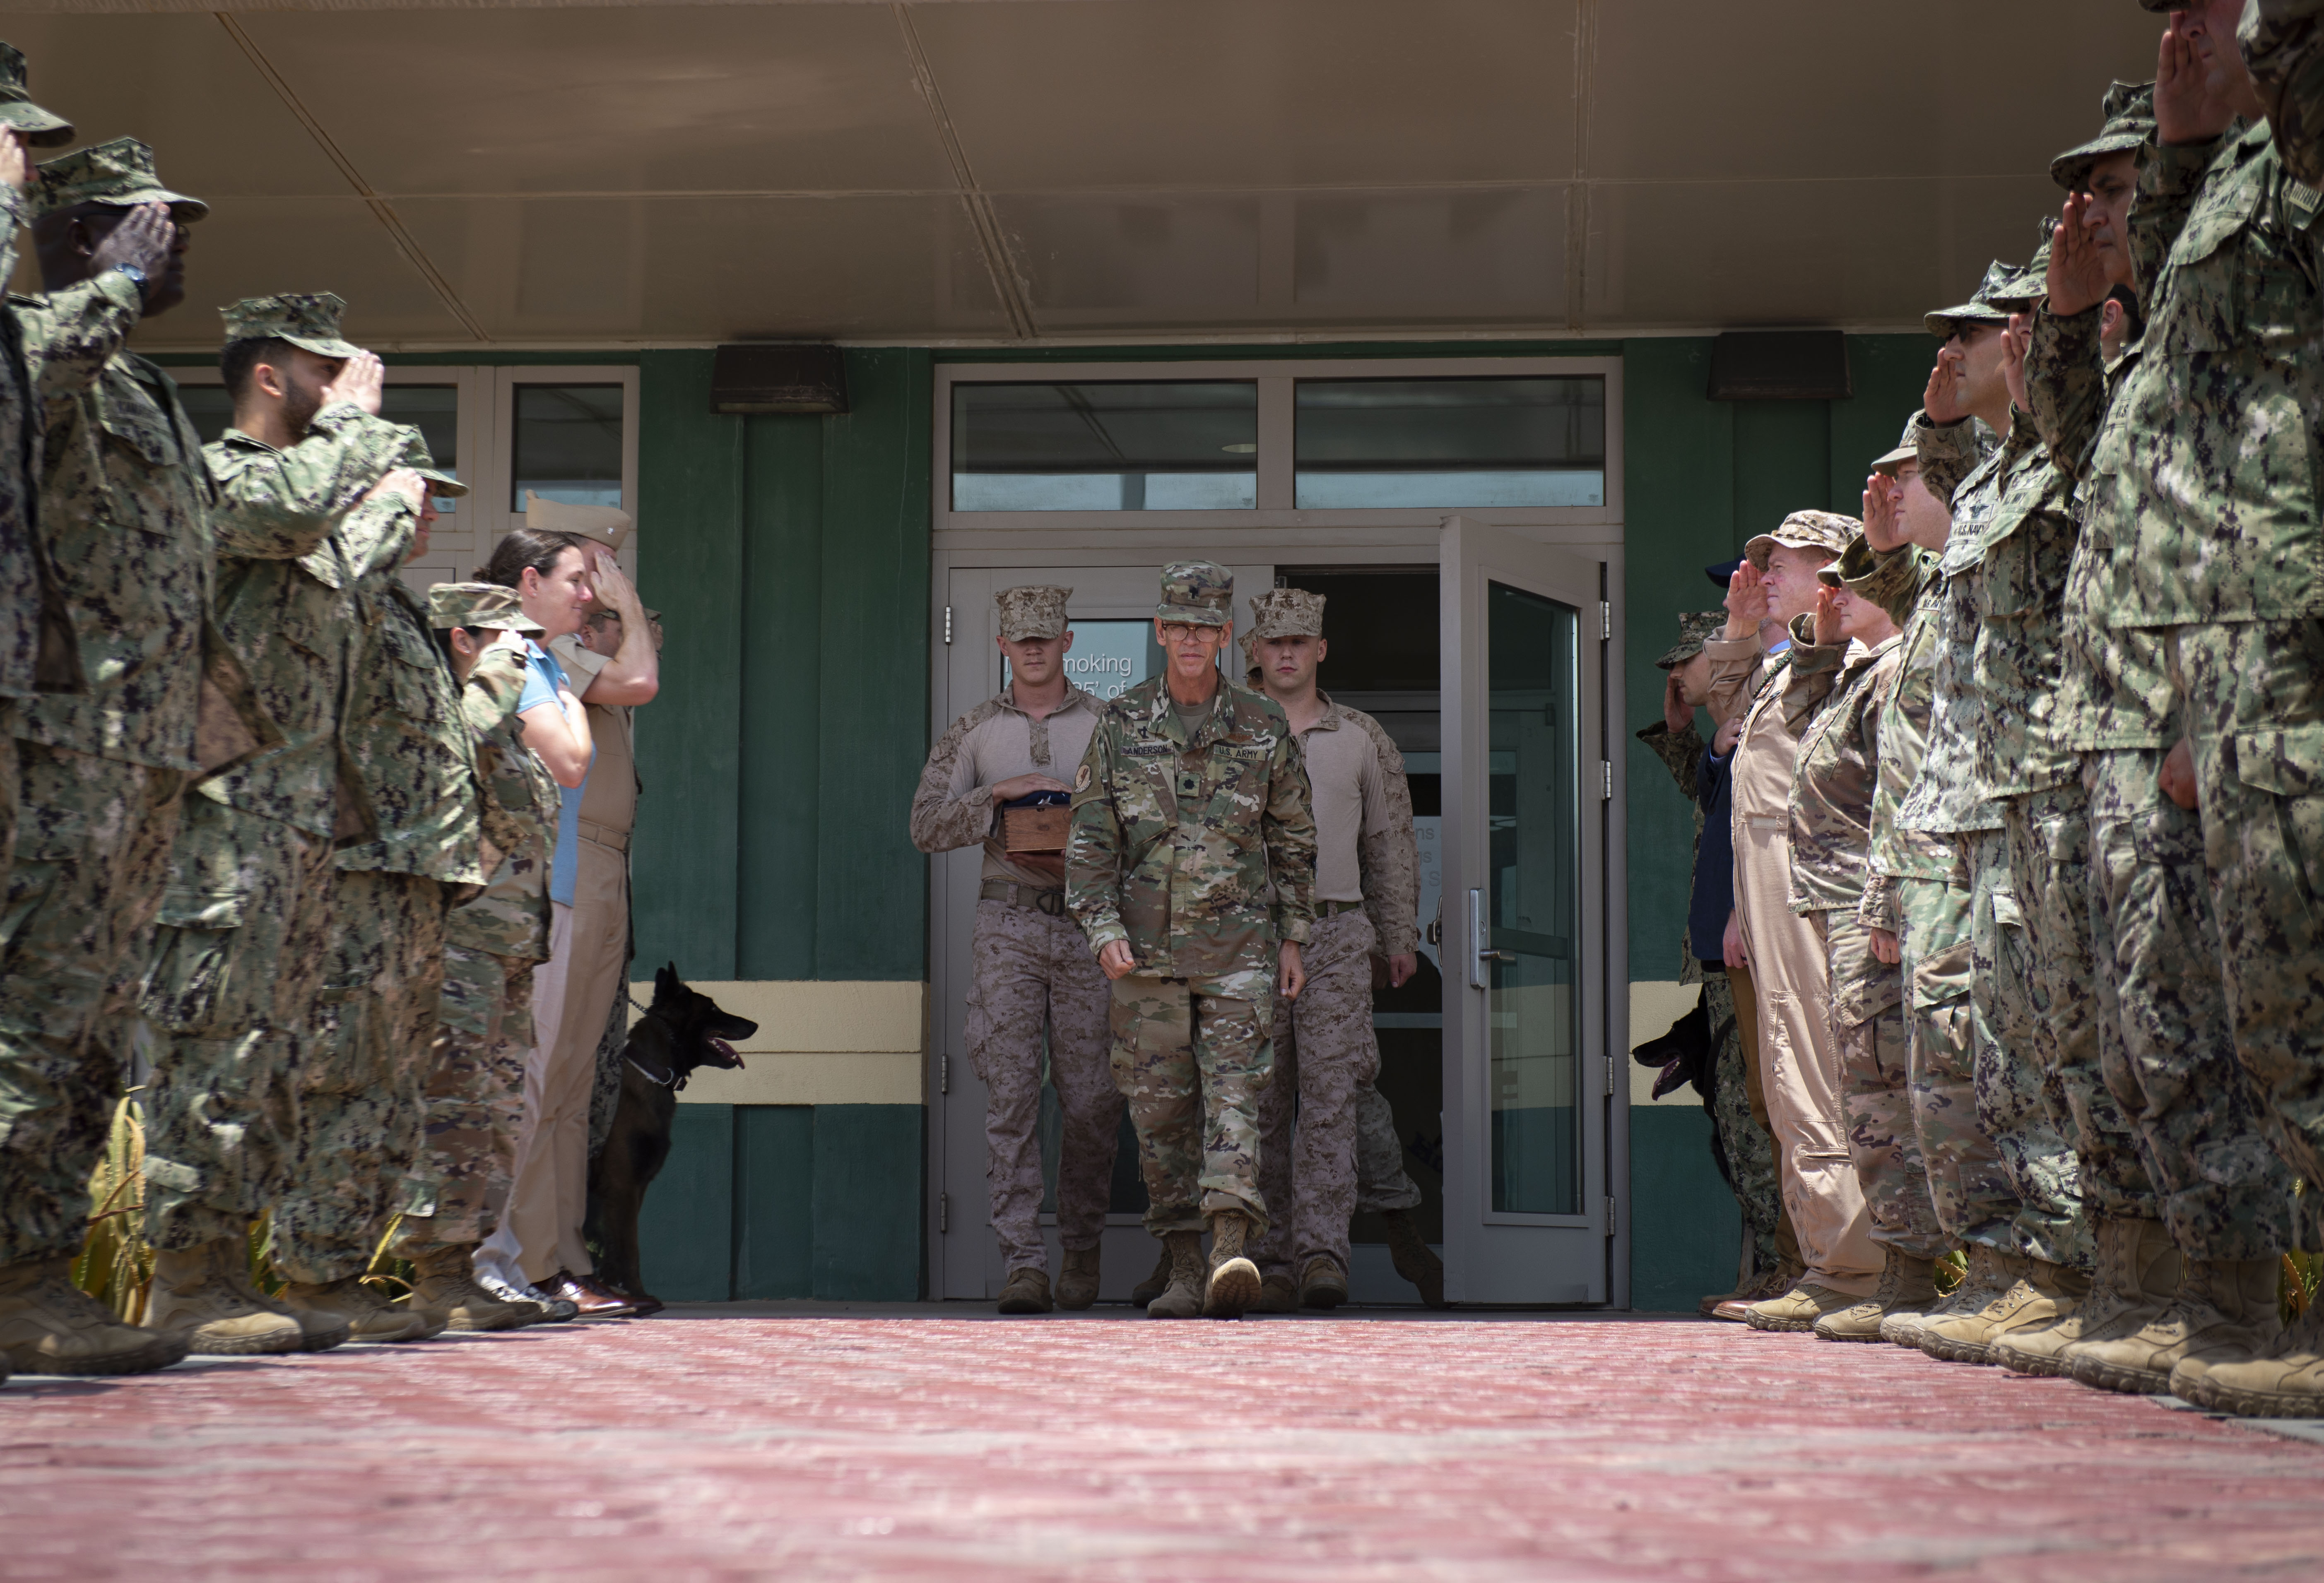 Service members assigned to Combined Joint Task Force-Horn of Africa (CJTF-HOA) and Camp Lemonnier, Djibouti (CLDJ), salute during the dignified transfer of U.S. Marine military working dog, Aarno, at CLDJ, Sept. 19, 2019. Aarno passed away of natural causes while assigned to CLDJ-HOA. (U.S. Air Force photo by Senior Airman Gabrielle Spalding)